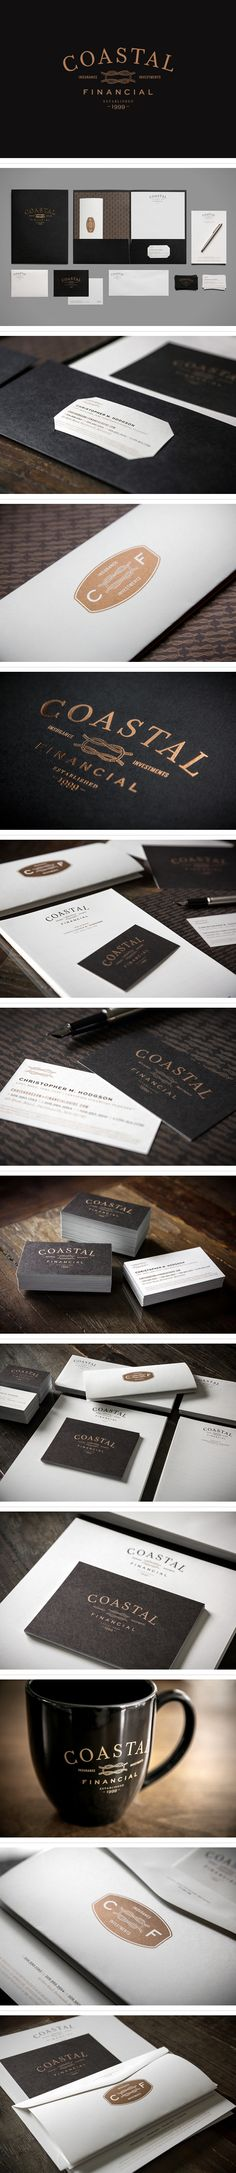 Coastal Financial identity